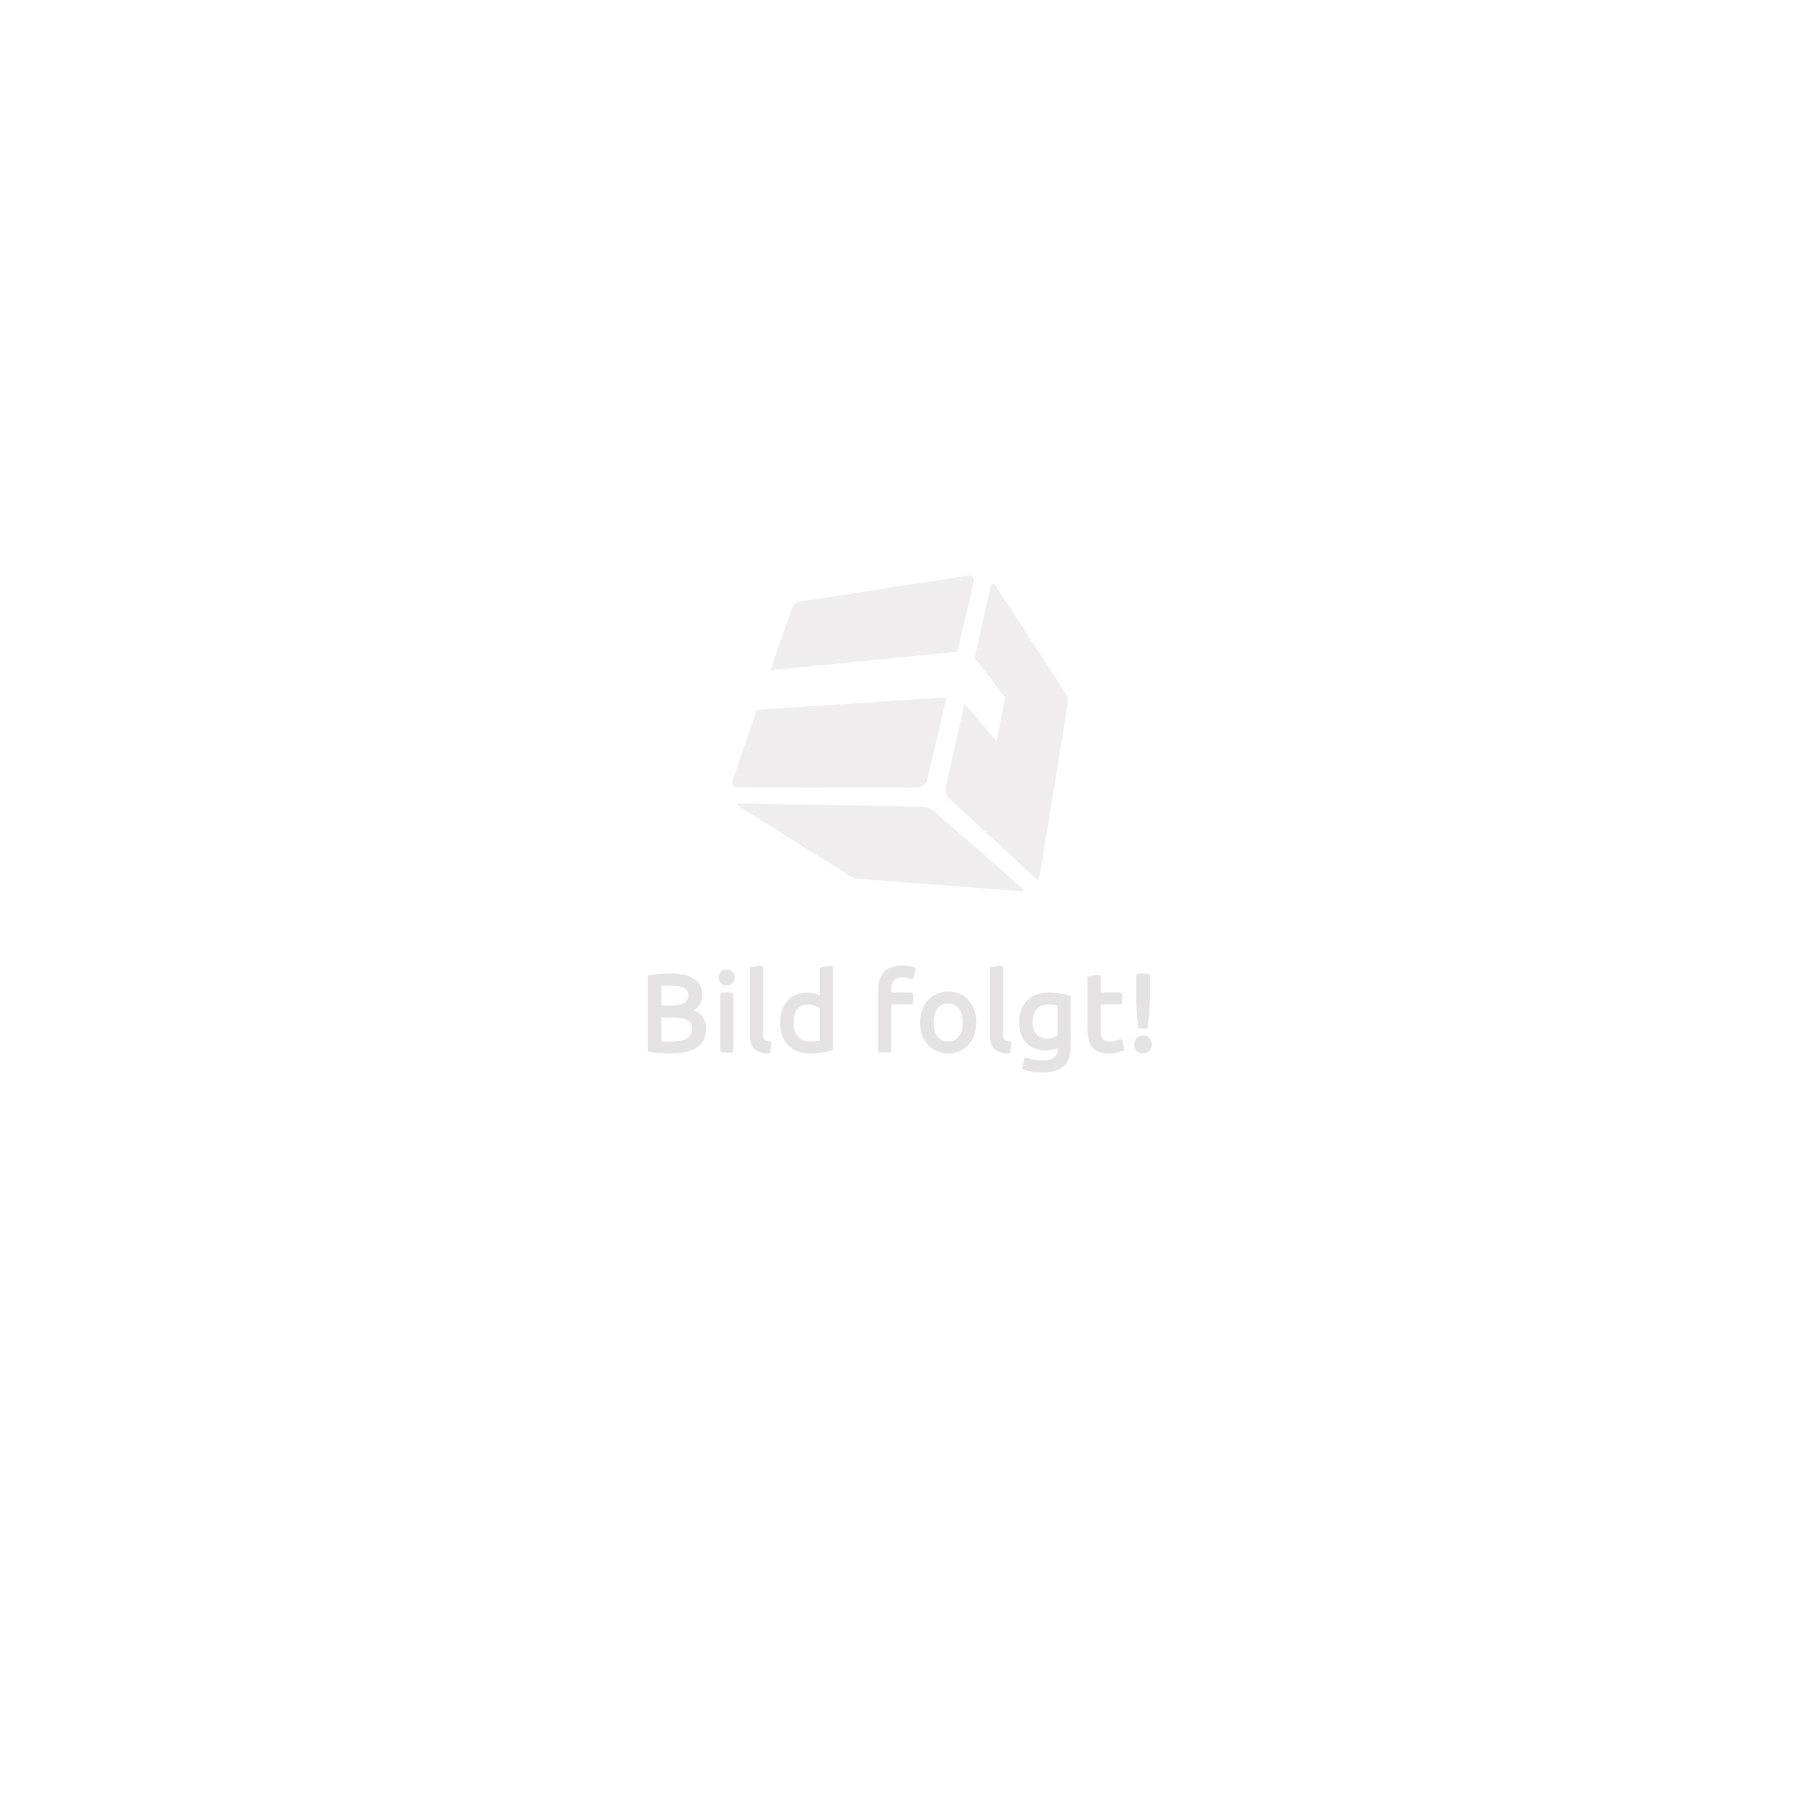 Abri de plage, POP UP, Parasol, Protection UV + Sac